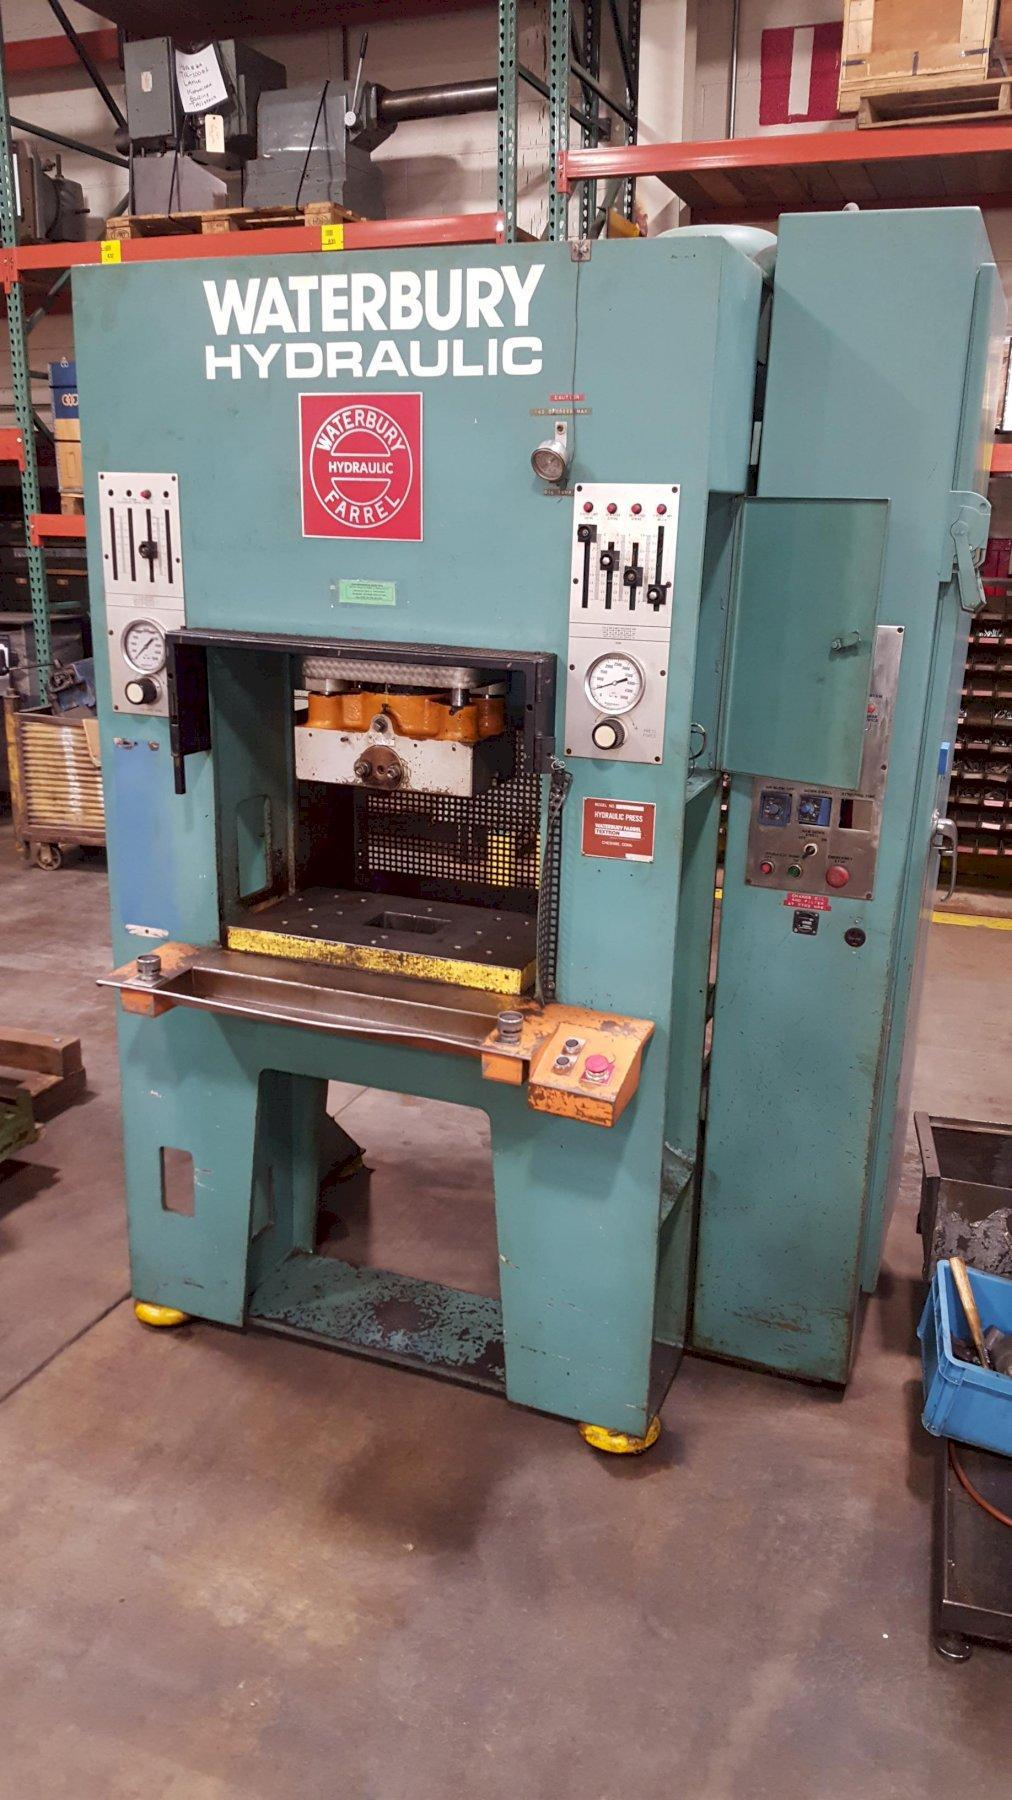 30-Ton Waterbury Series 'S' Hydraulic Punching, Forming, Coining & Progressive Press